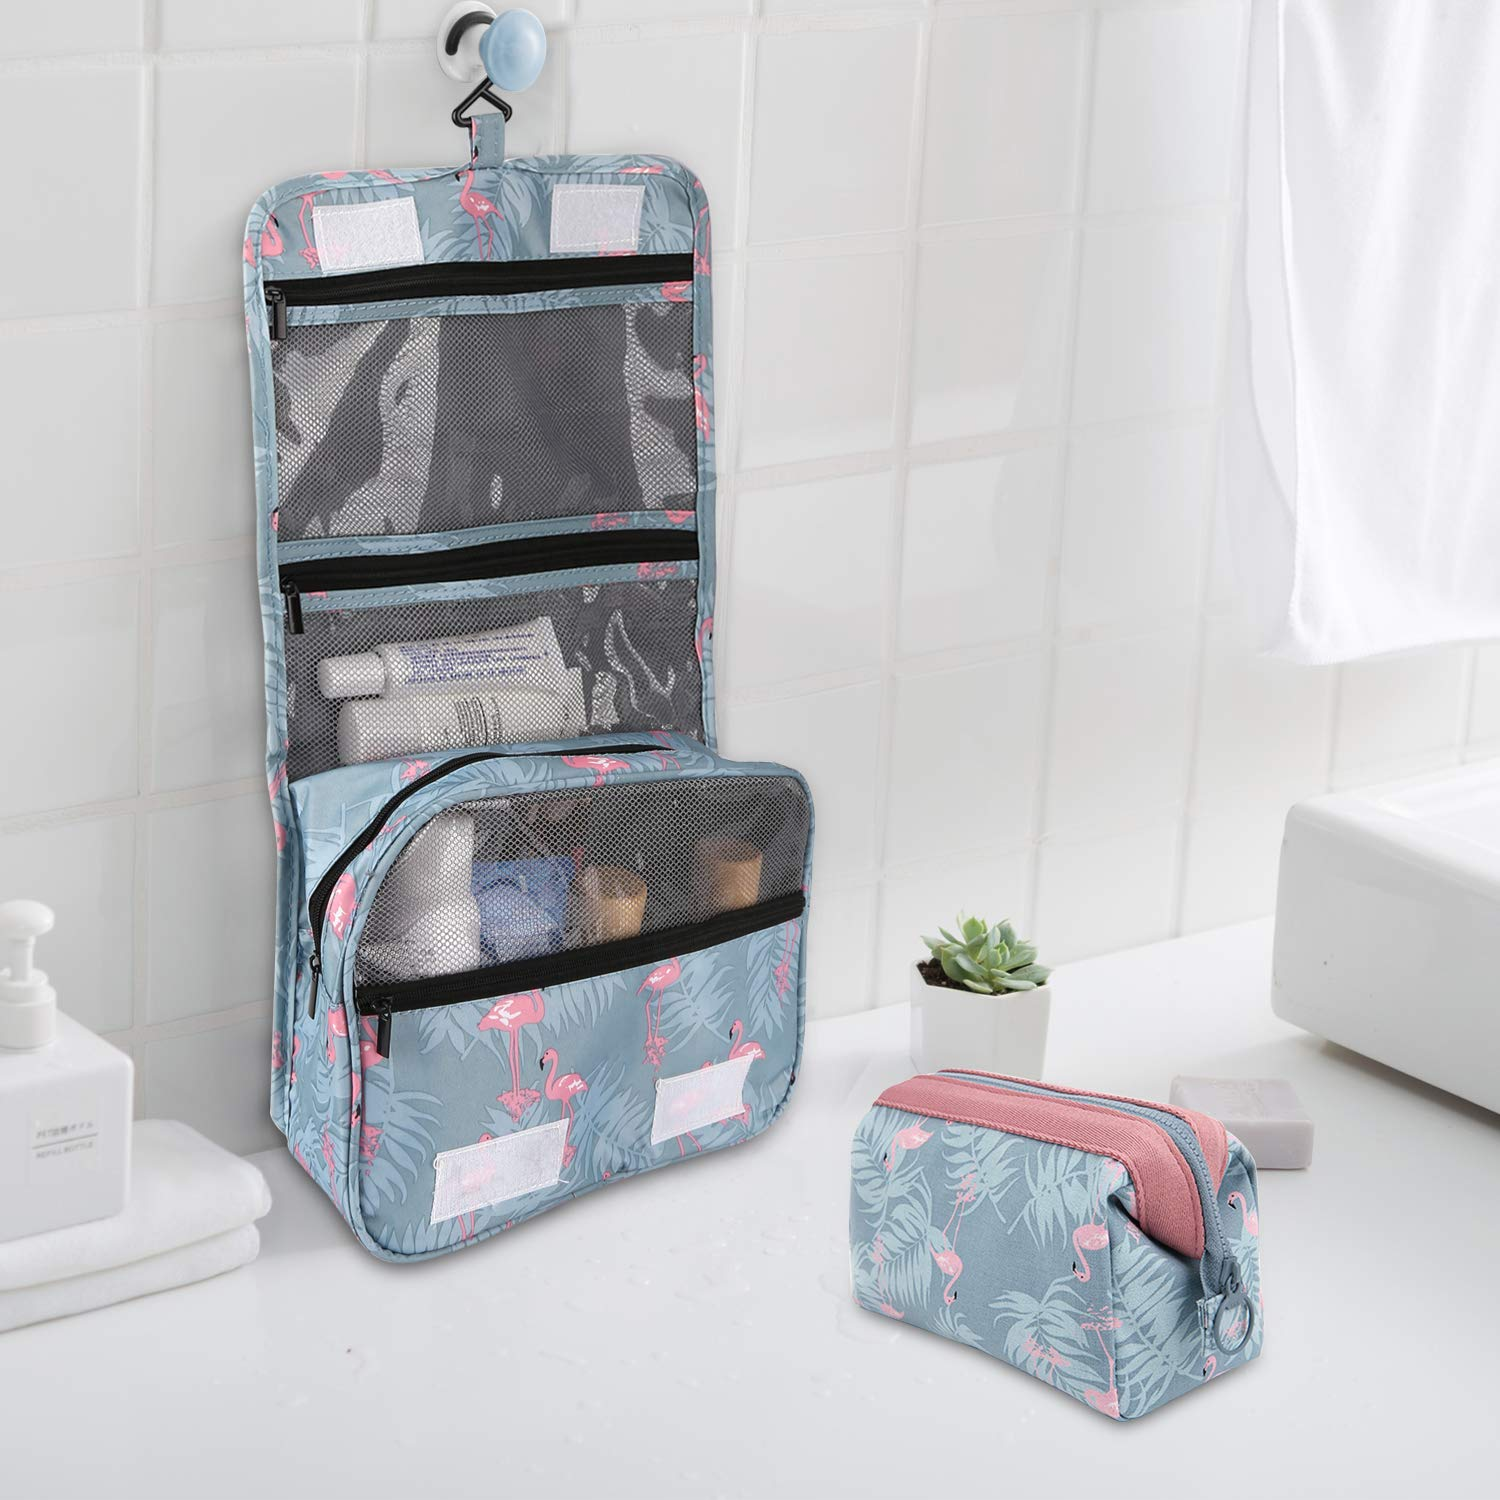 2 Pieces Toiletry Bag Multifunction Hanging Cosmetic Bag Portable Organizer Makeup Bags Pouch Large Capacity Waterproof Travel Bag for Women Girls Men